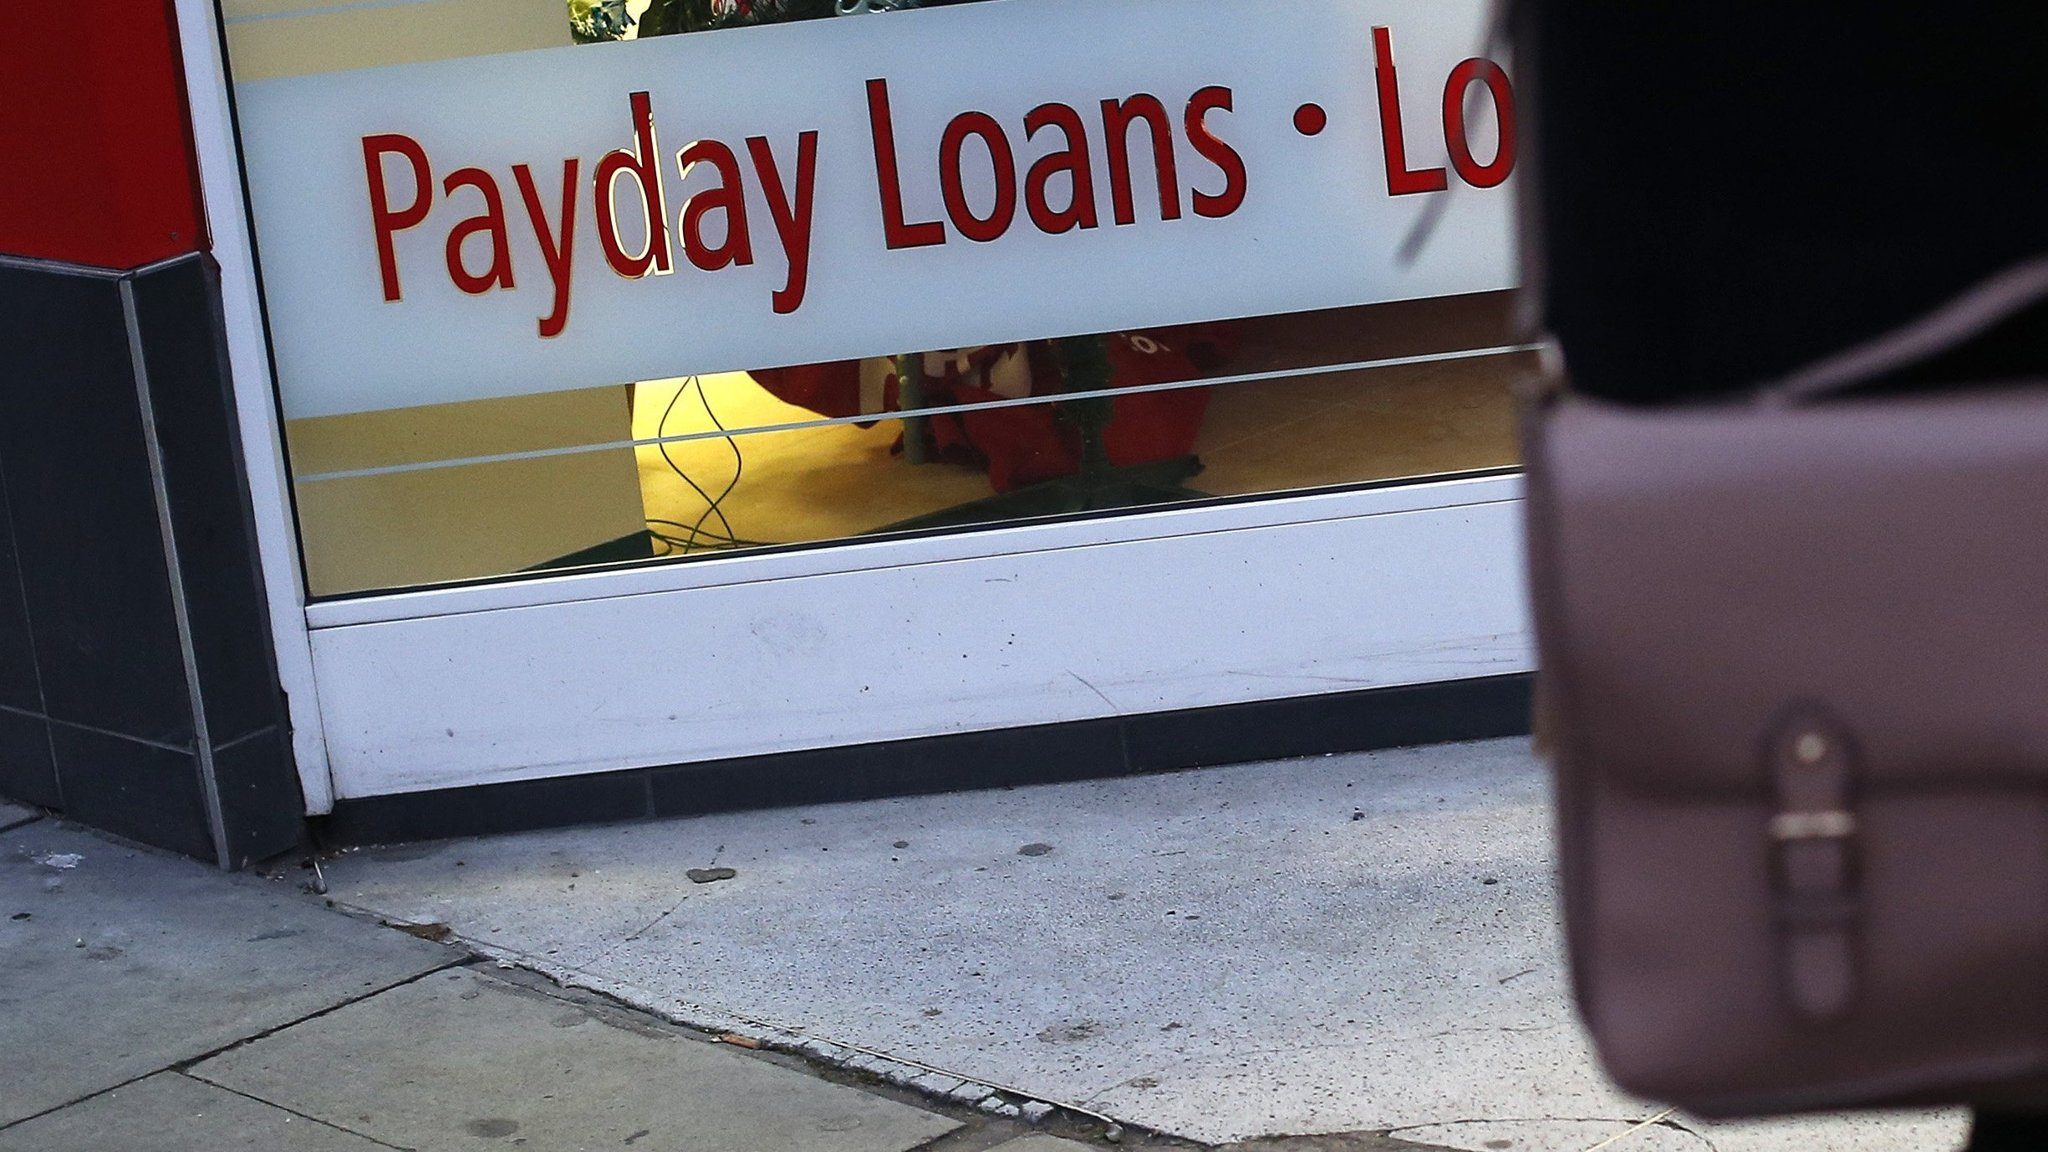 $620 Payday Loans Online